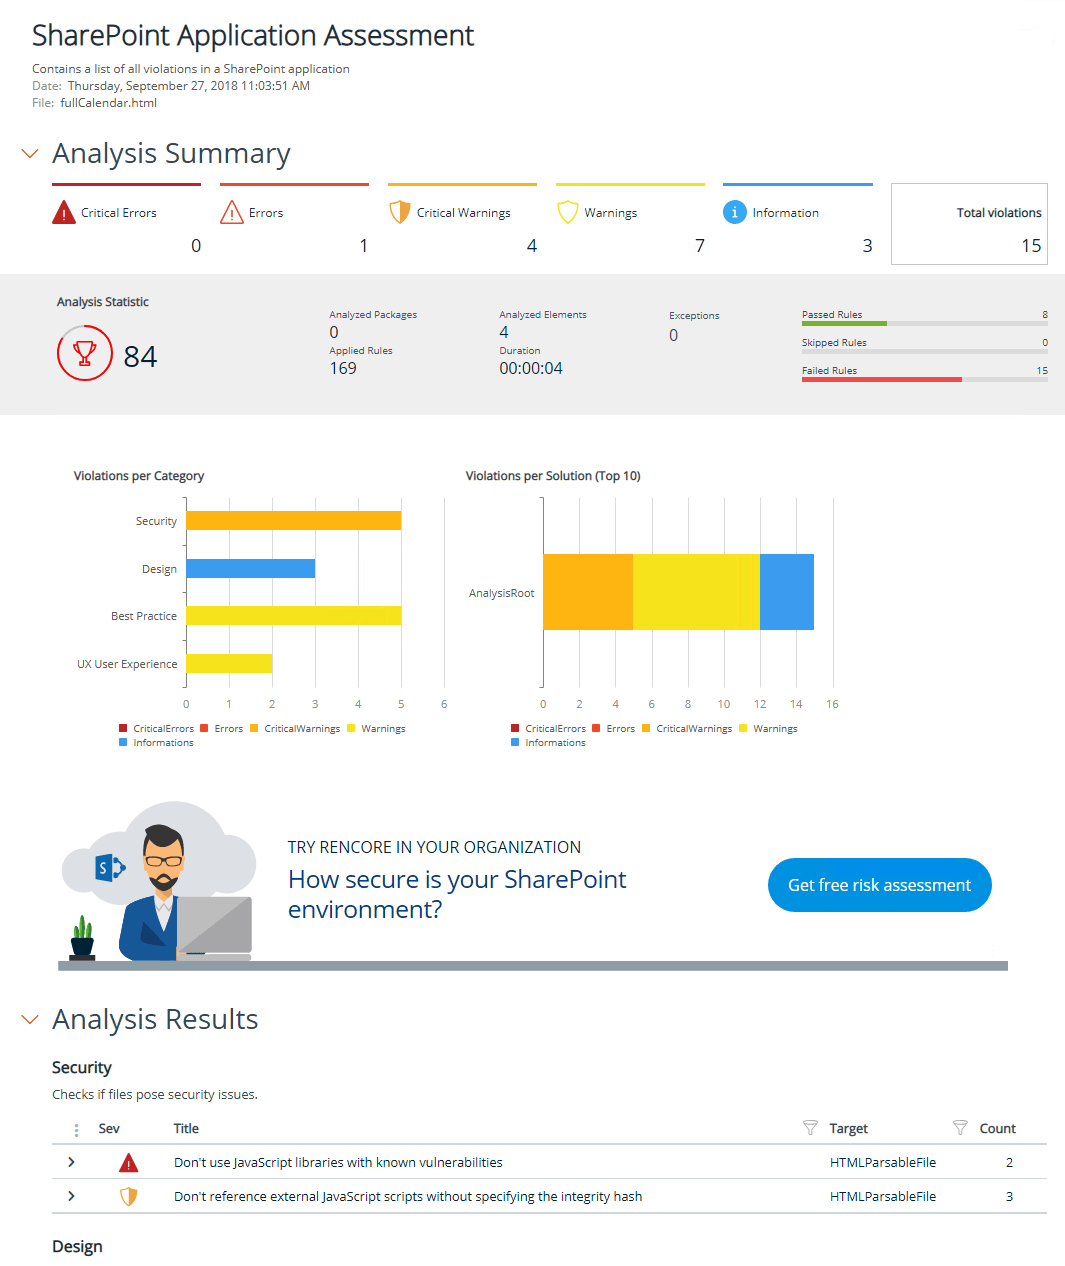 SharePoint application assessment report produced by the Rencore platform